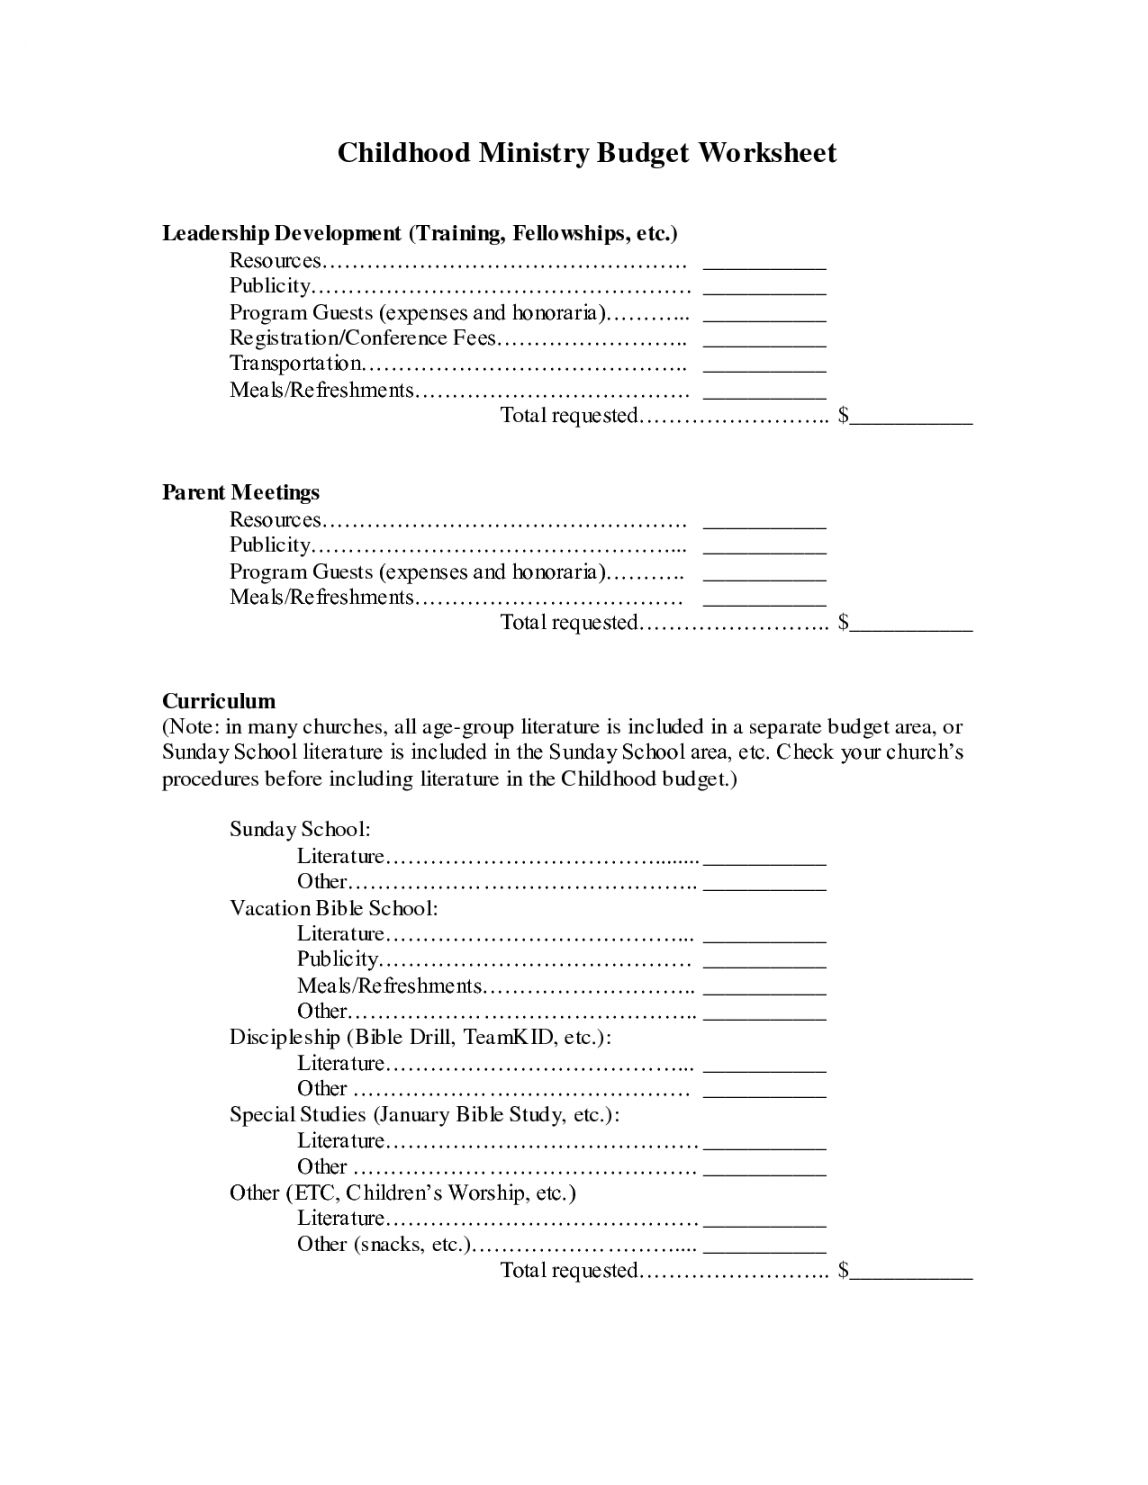 Get Our Image Of Youth Ministry Budget Template For Free Budget Template Budgeting Budgeting Worksheets